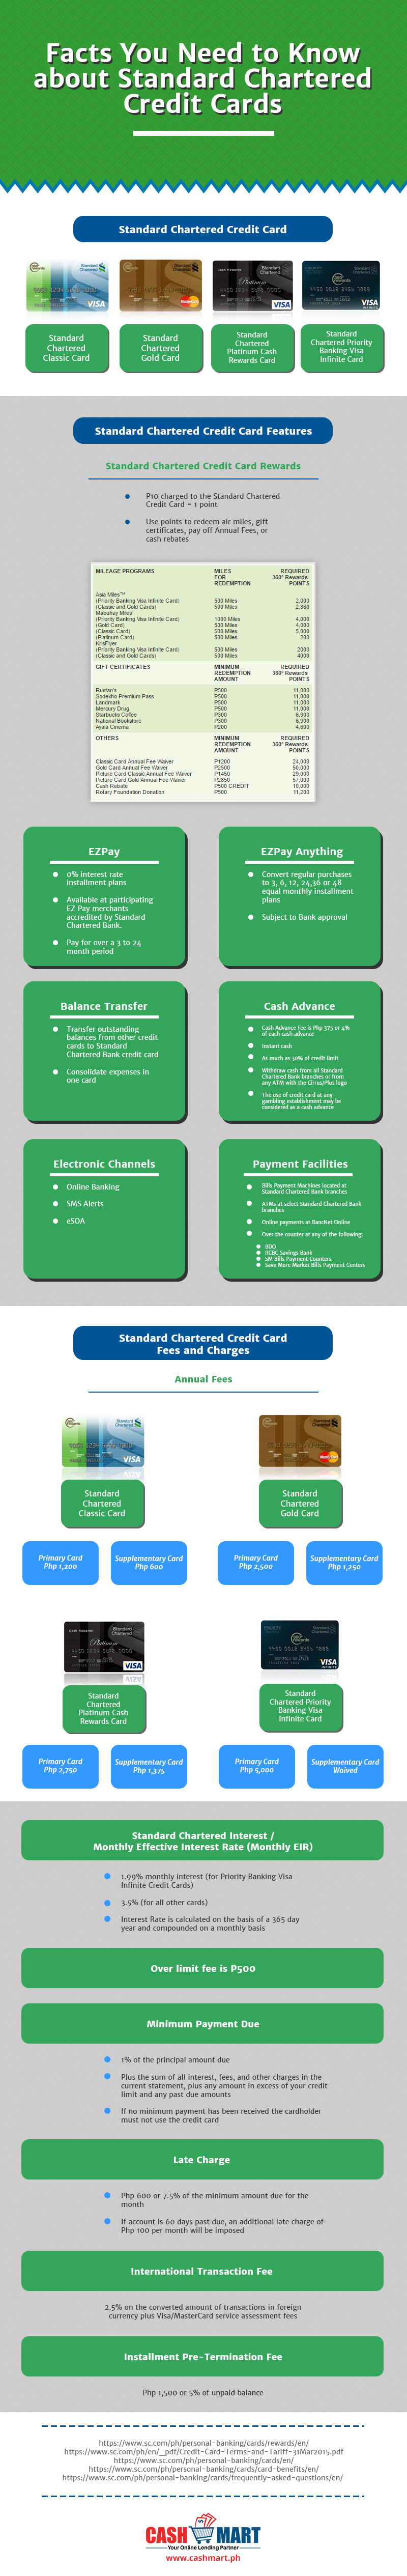 facts-you-need-to-know-about-standard-chartered-credit-cards